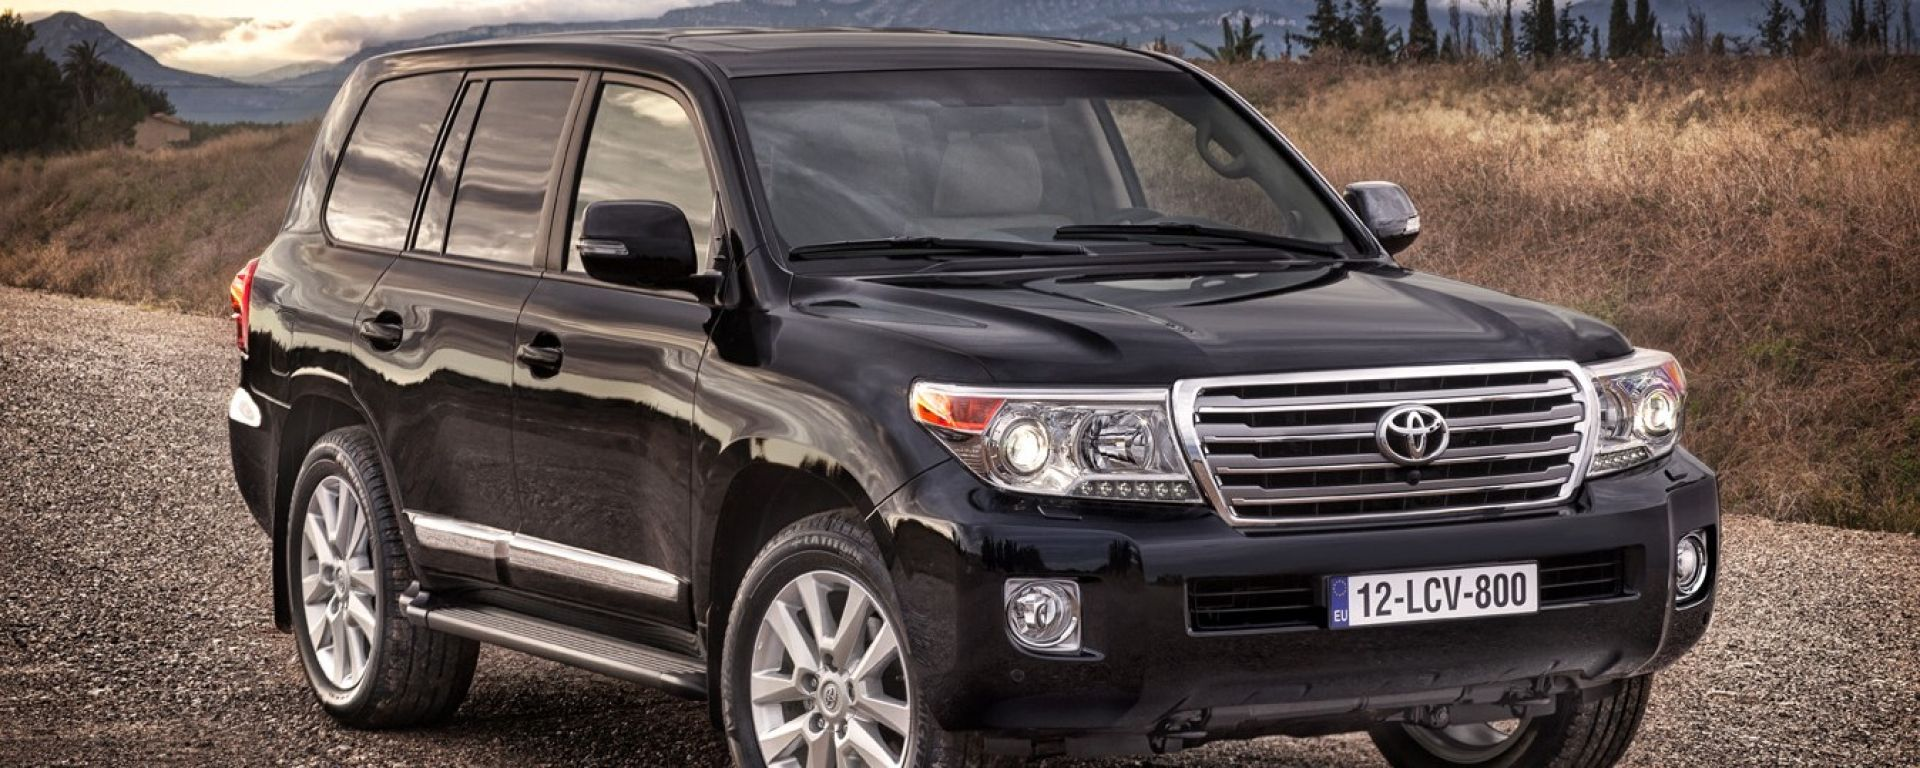 Toyota Land Cruiser V8 2012